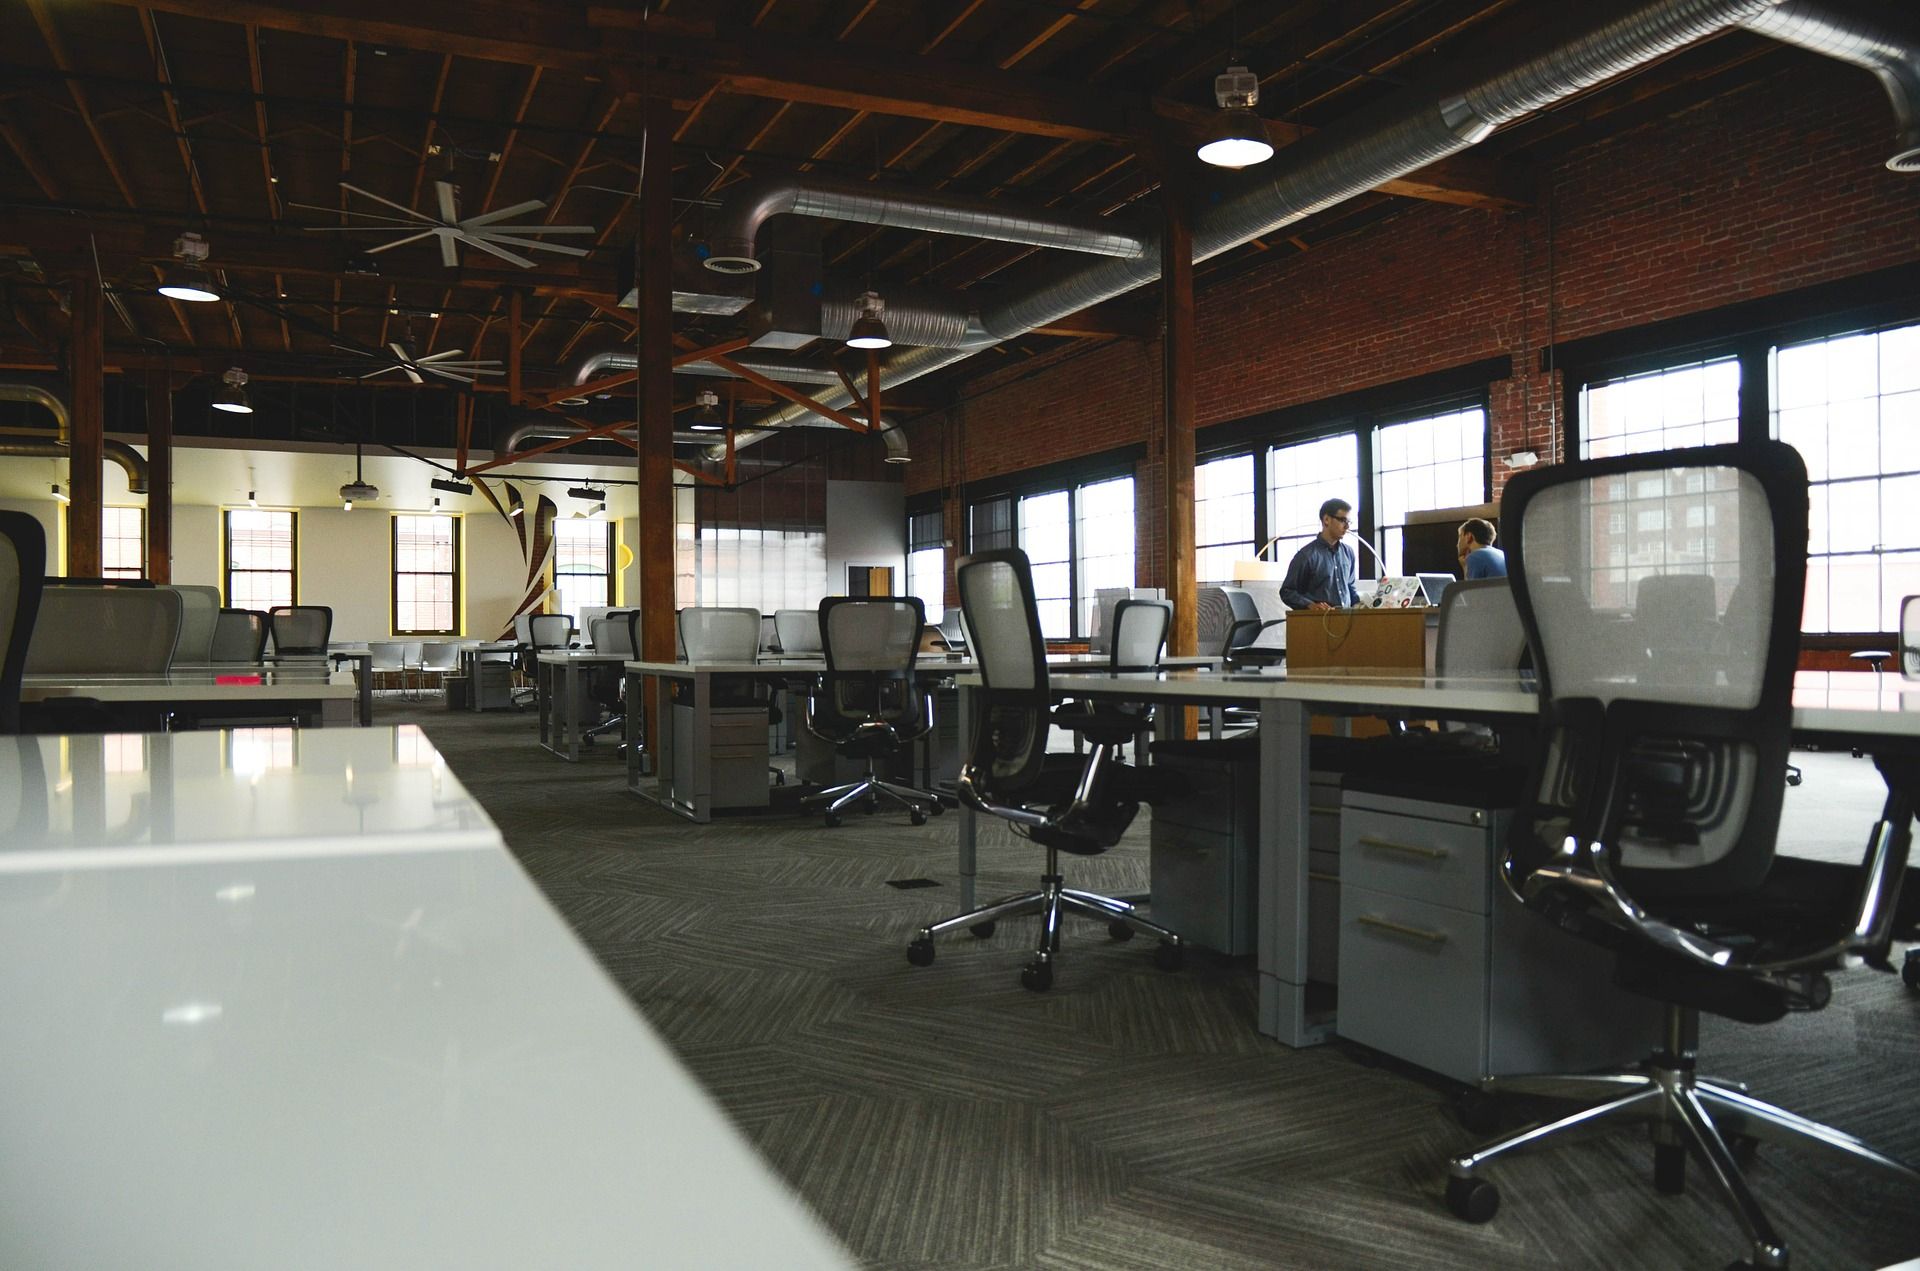 Image showing office space for managed operations and seat leasing services.